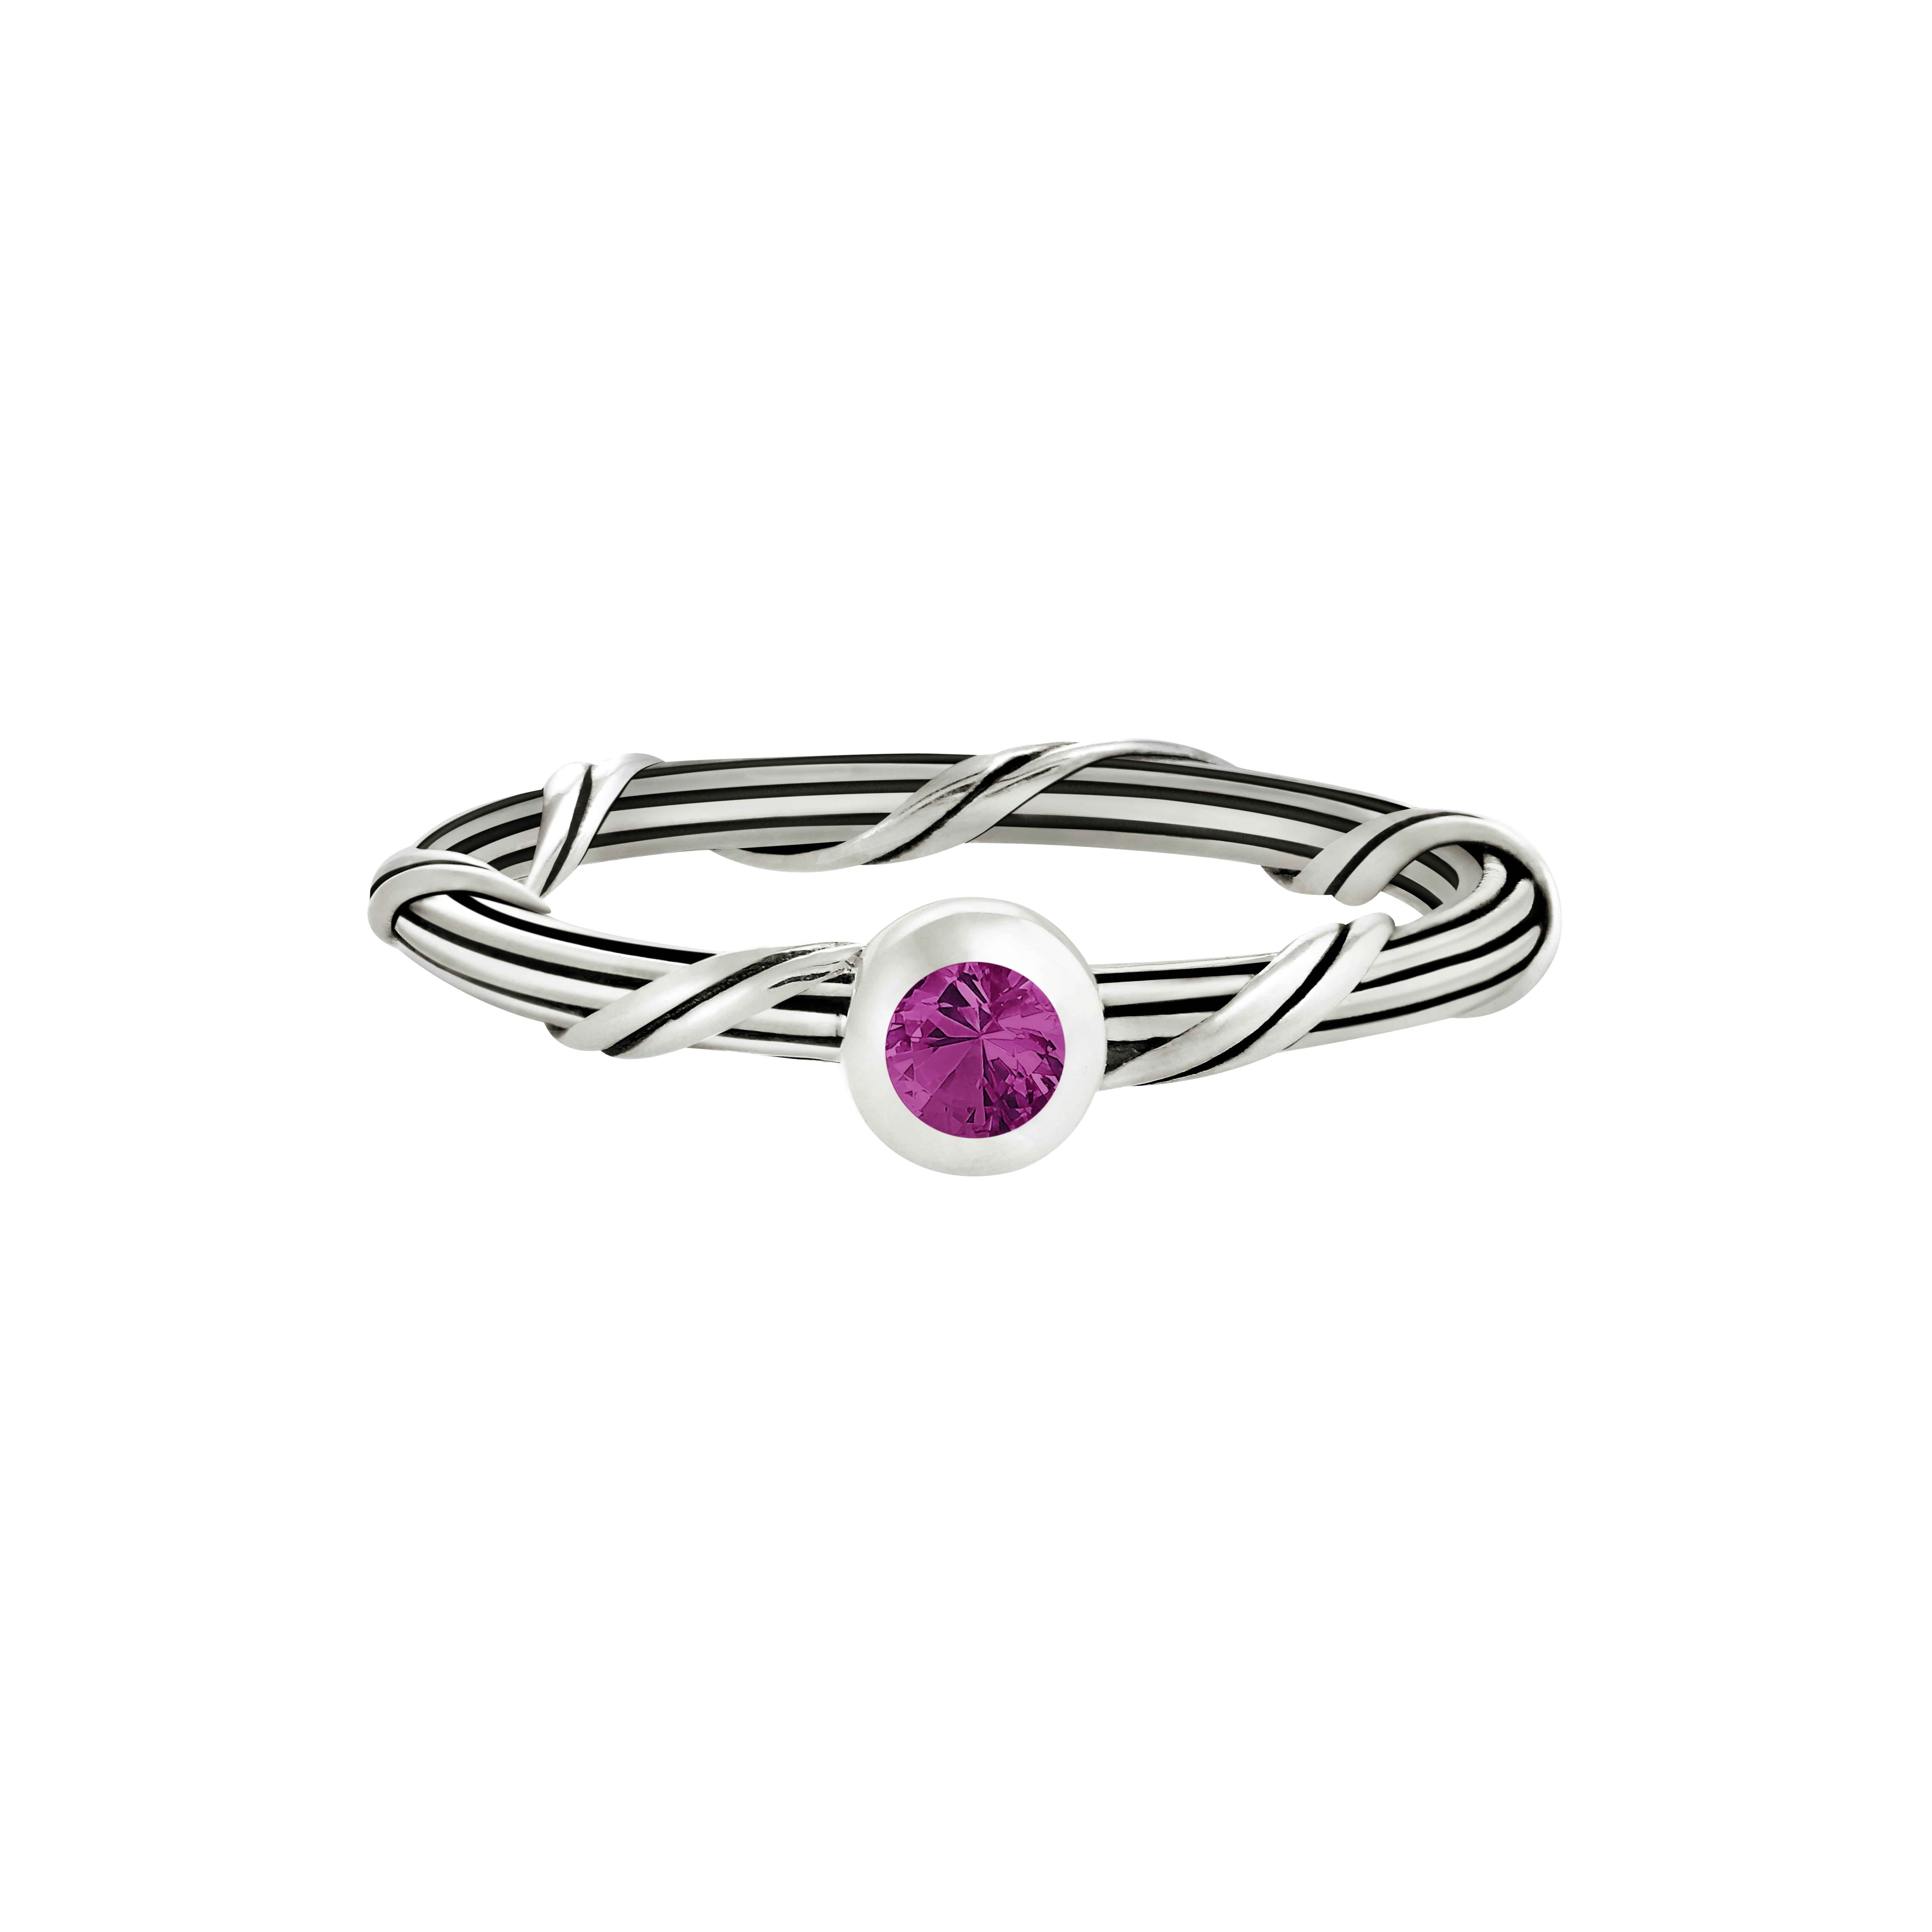 Signature Romance Ruby Ring in sterling silver